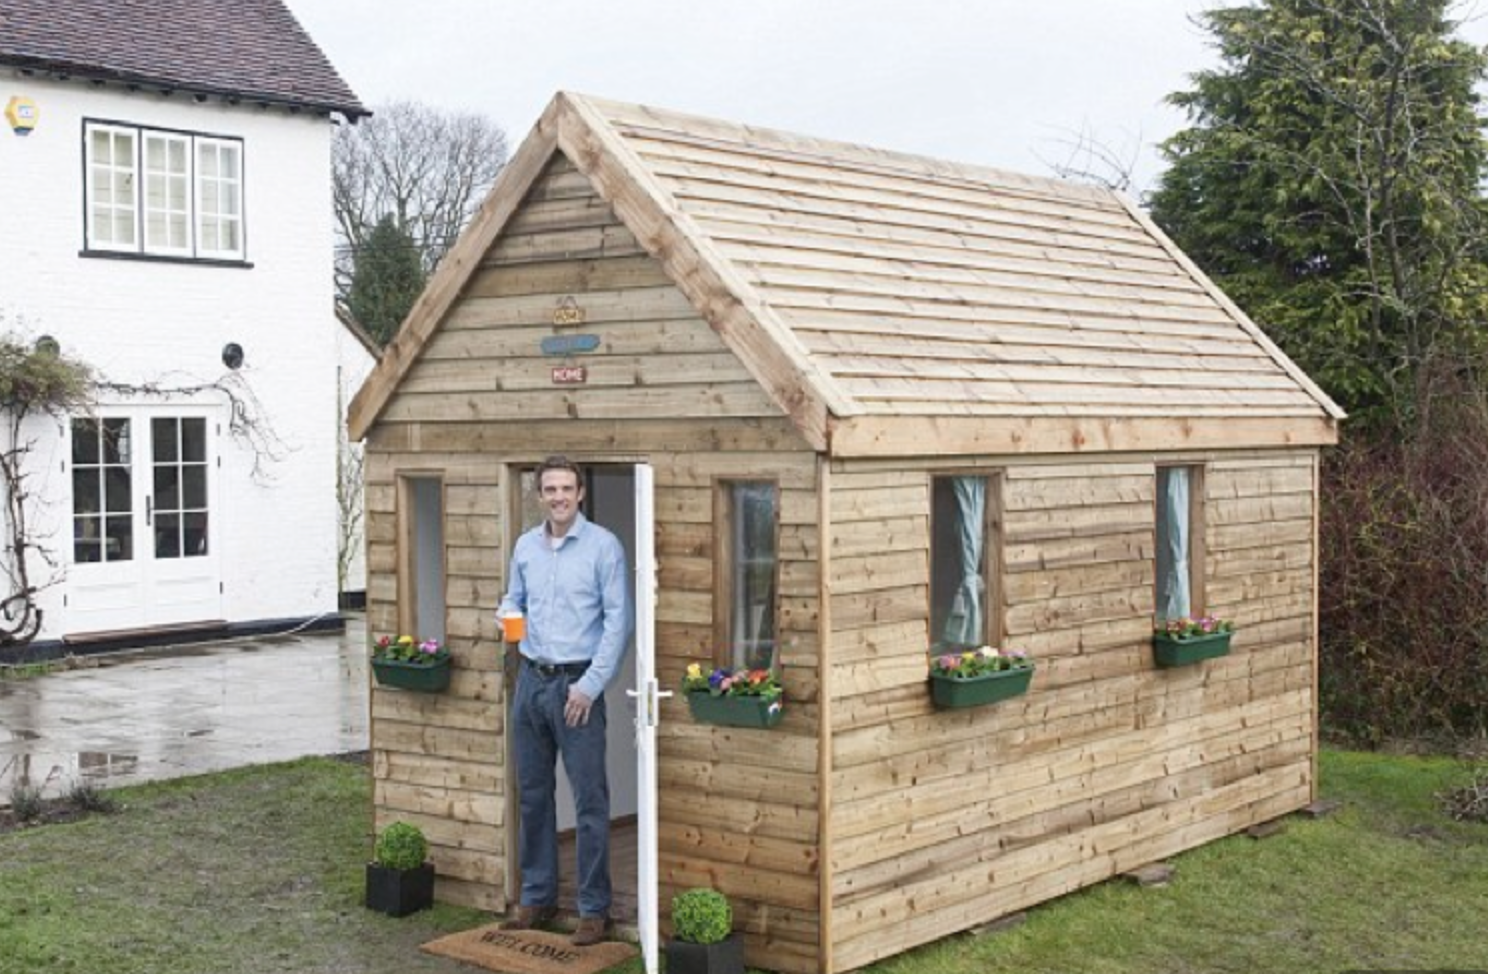 A Tiny House UK kit costs from £6,500. Expect assembly time of 2 days. www.tinyhouseuk.co.uk